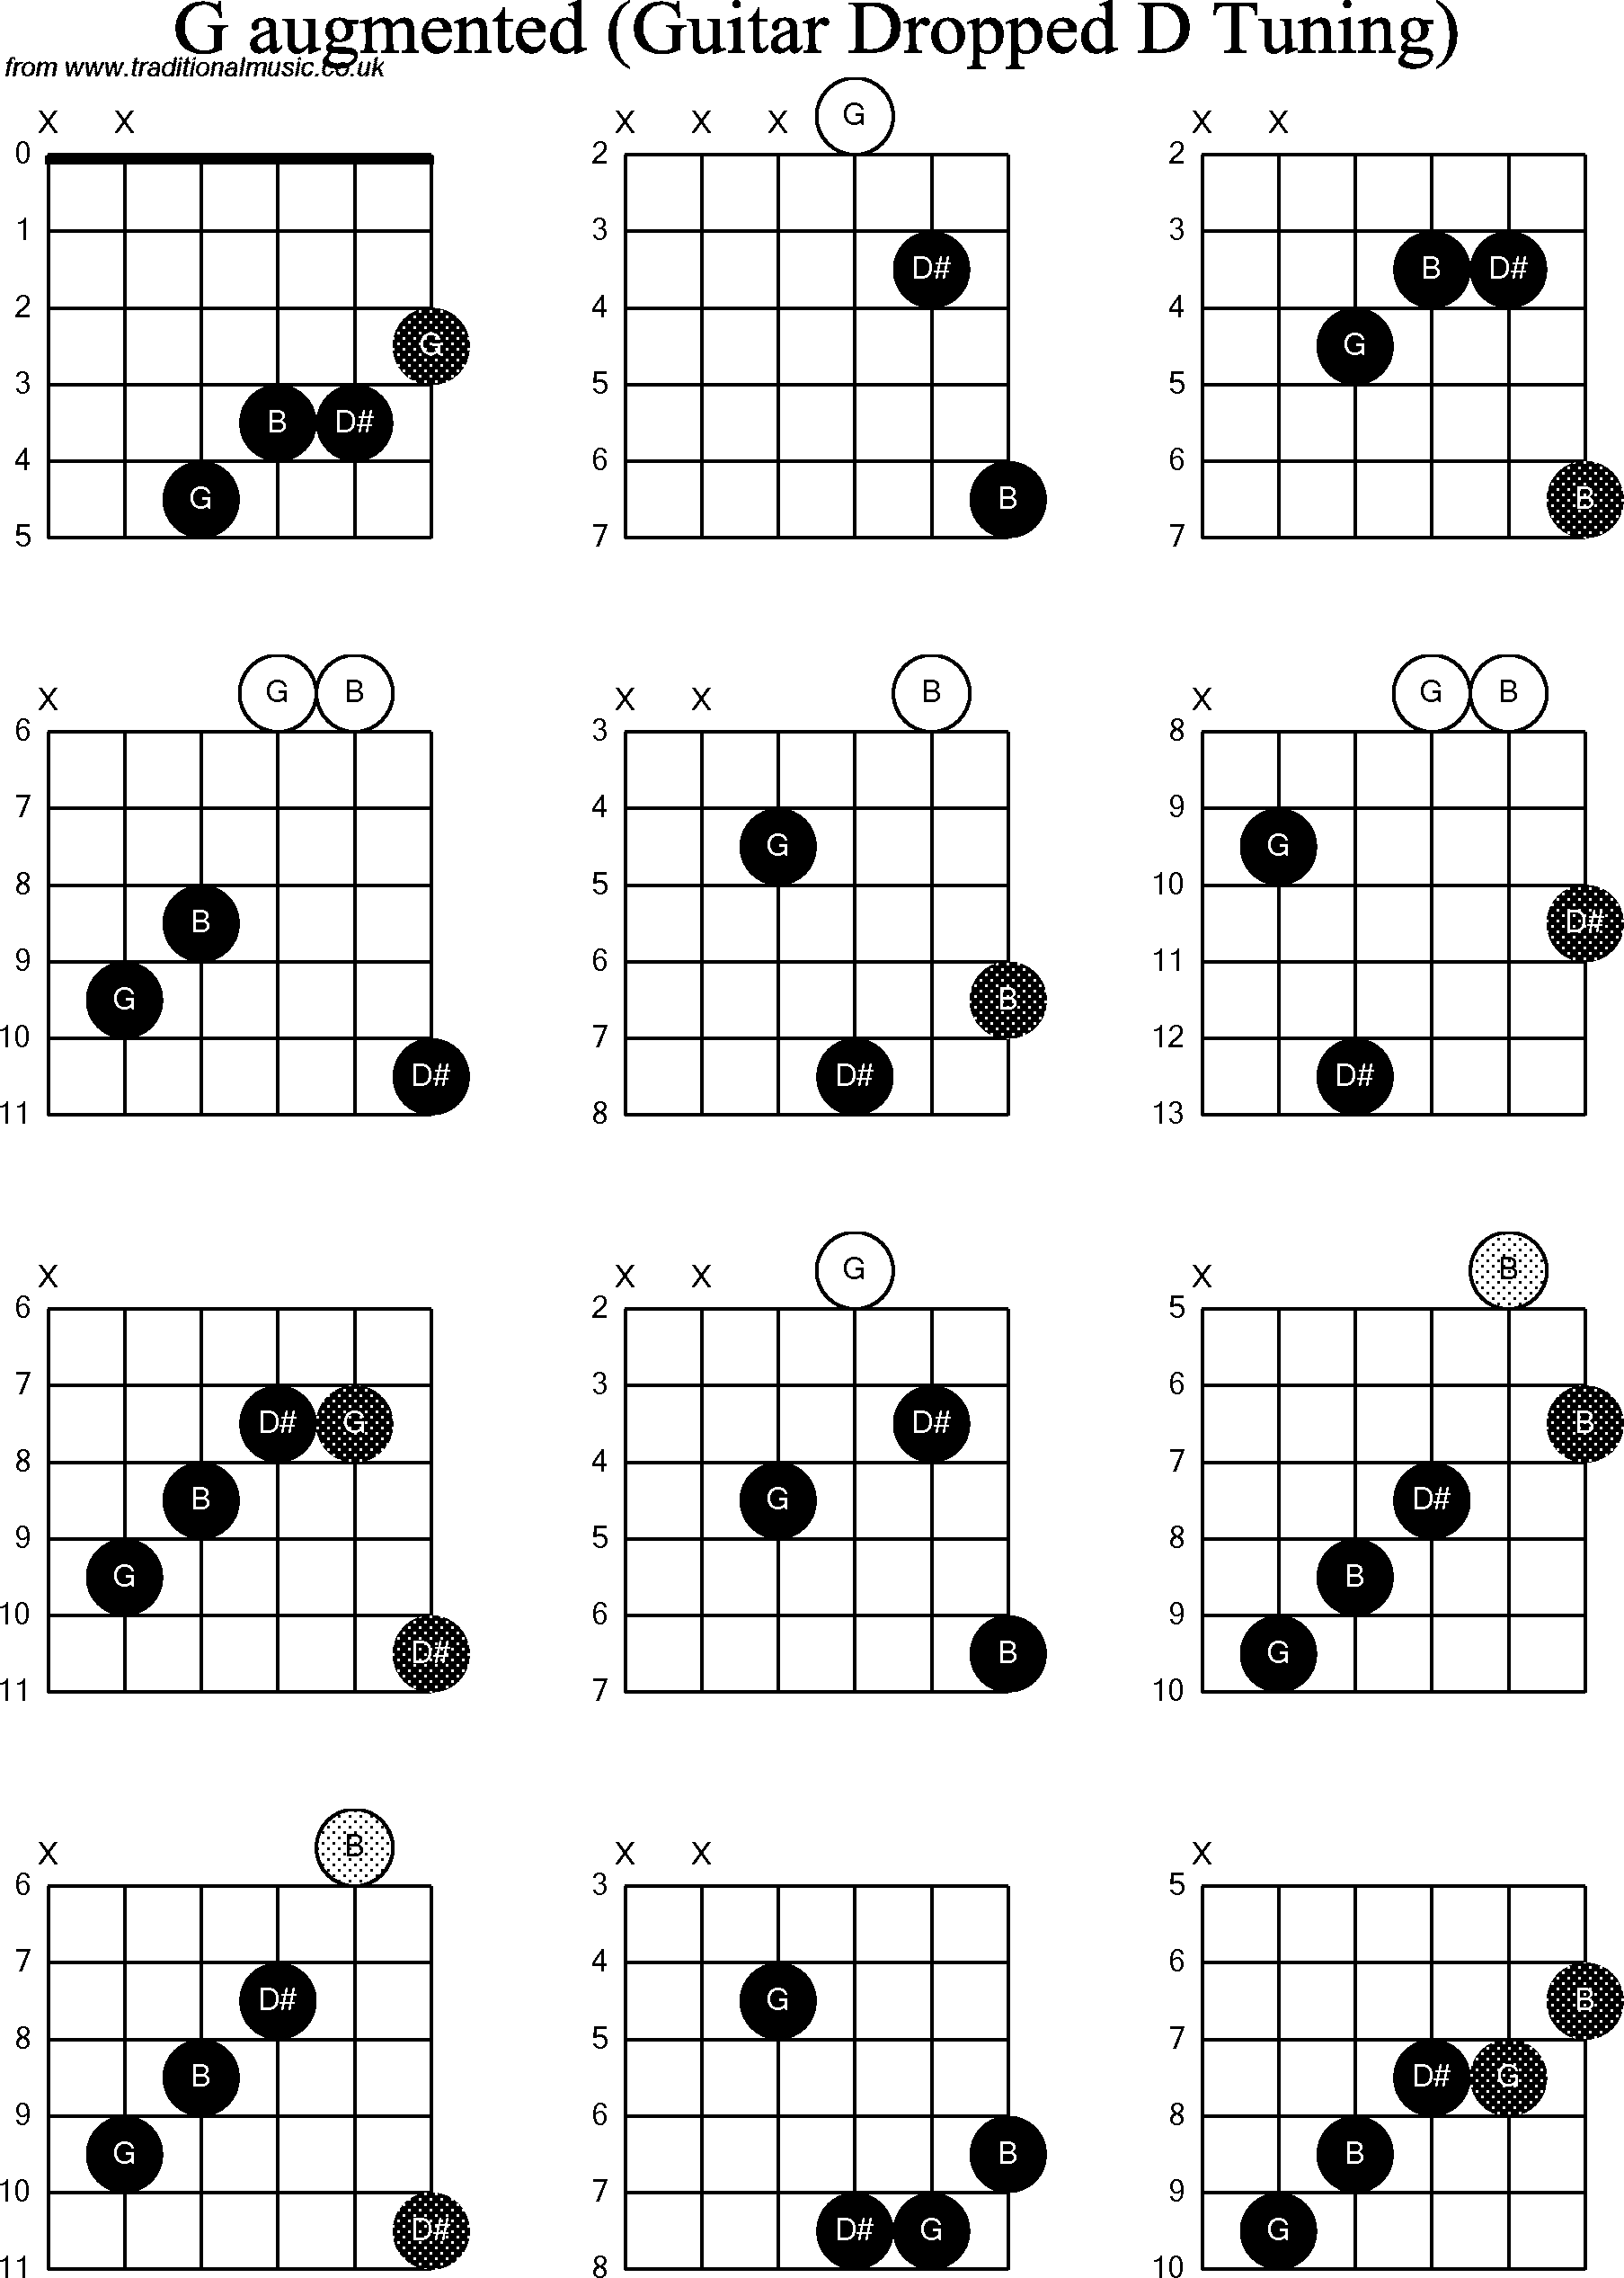 Chord Diagrams For Dropped D Guitardadgbe G Augmented